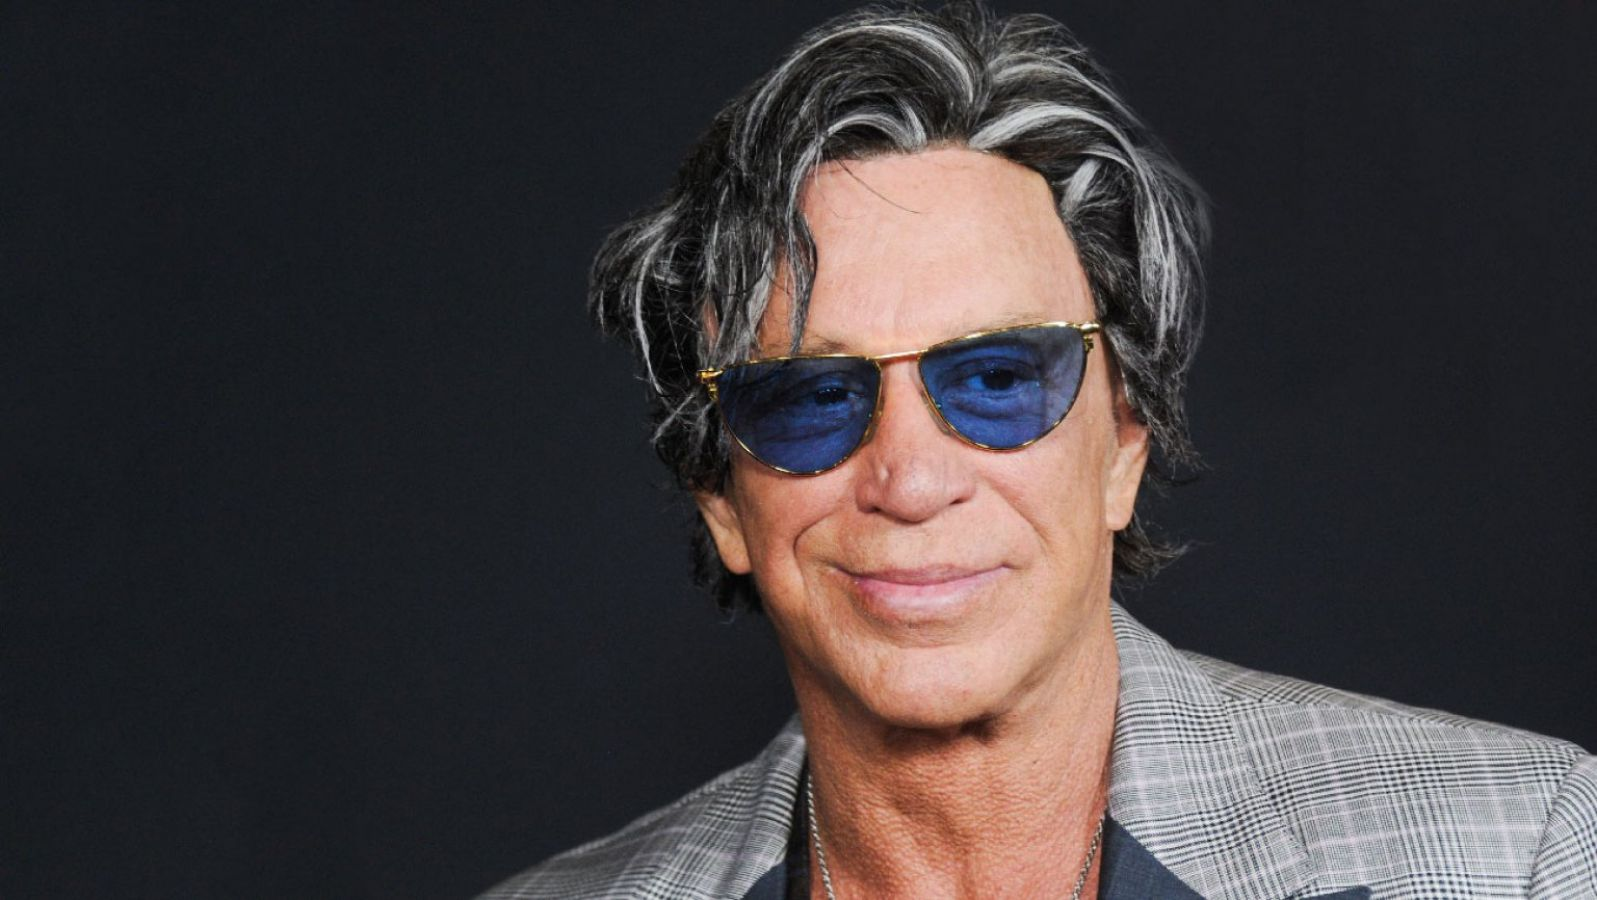 WarHunt - Mickey Rourke hired as one of leading actors (II ...